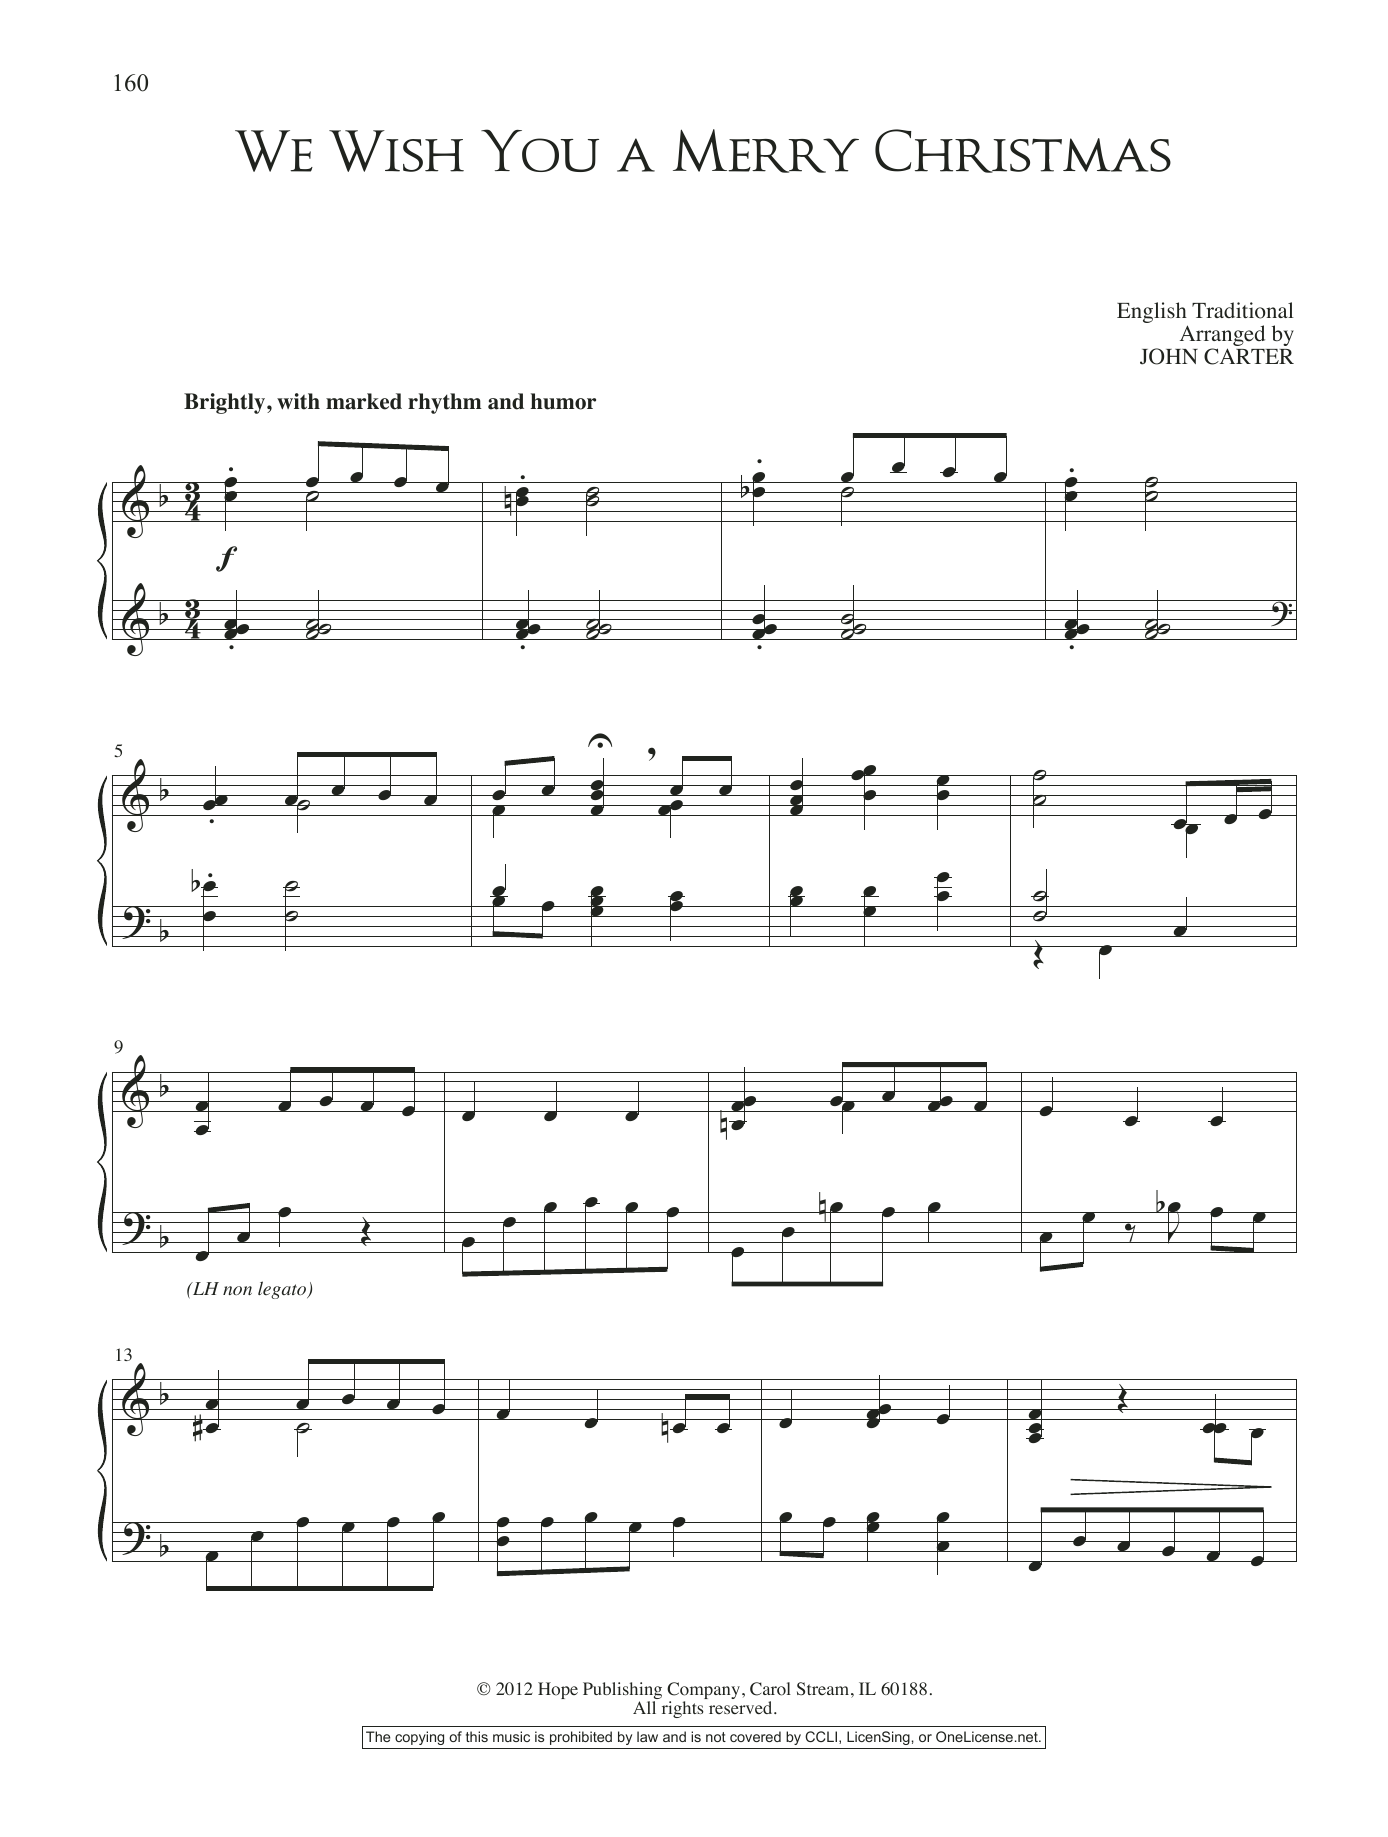 John Carter We Wish You A Merry Christmas sheet music notes and chords. Download Printable PDF.